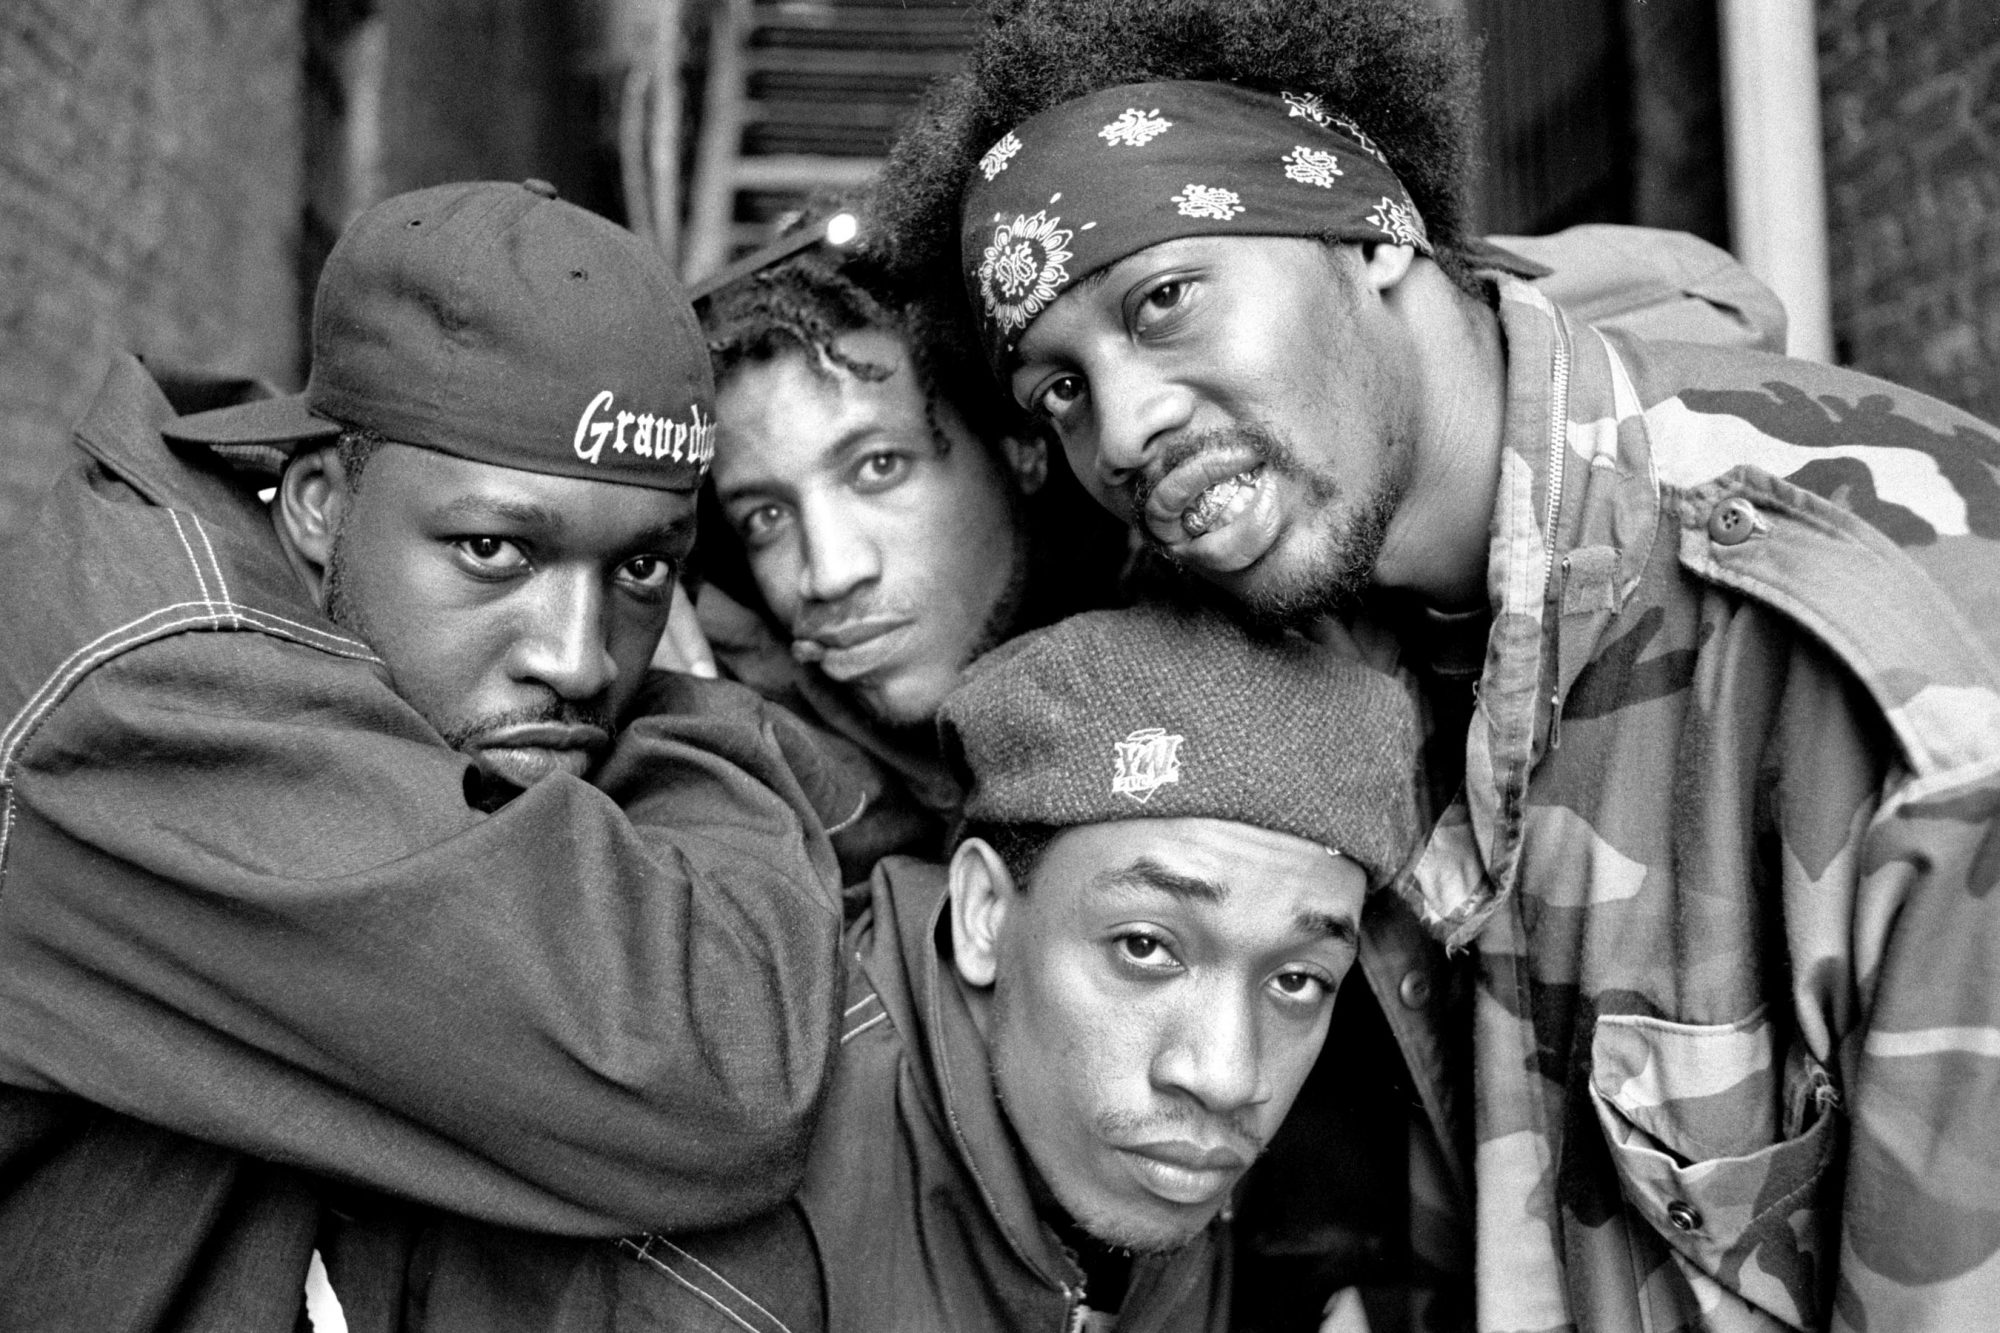 UNITED STATES - MAY 14: Photo of GRAVEDIGGAZ; Gravediggaz in NYC 14 May 1994 (Photo by David Corio/Redferns)